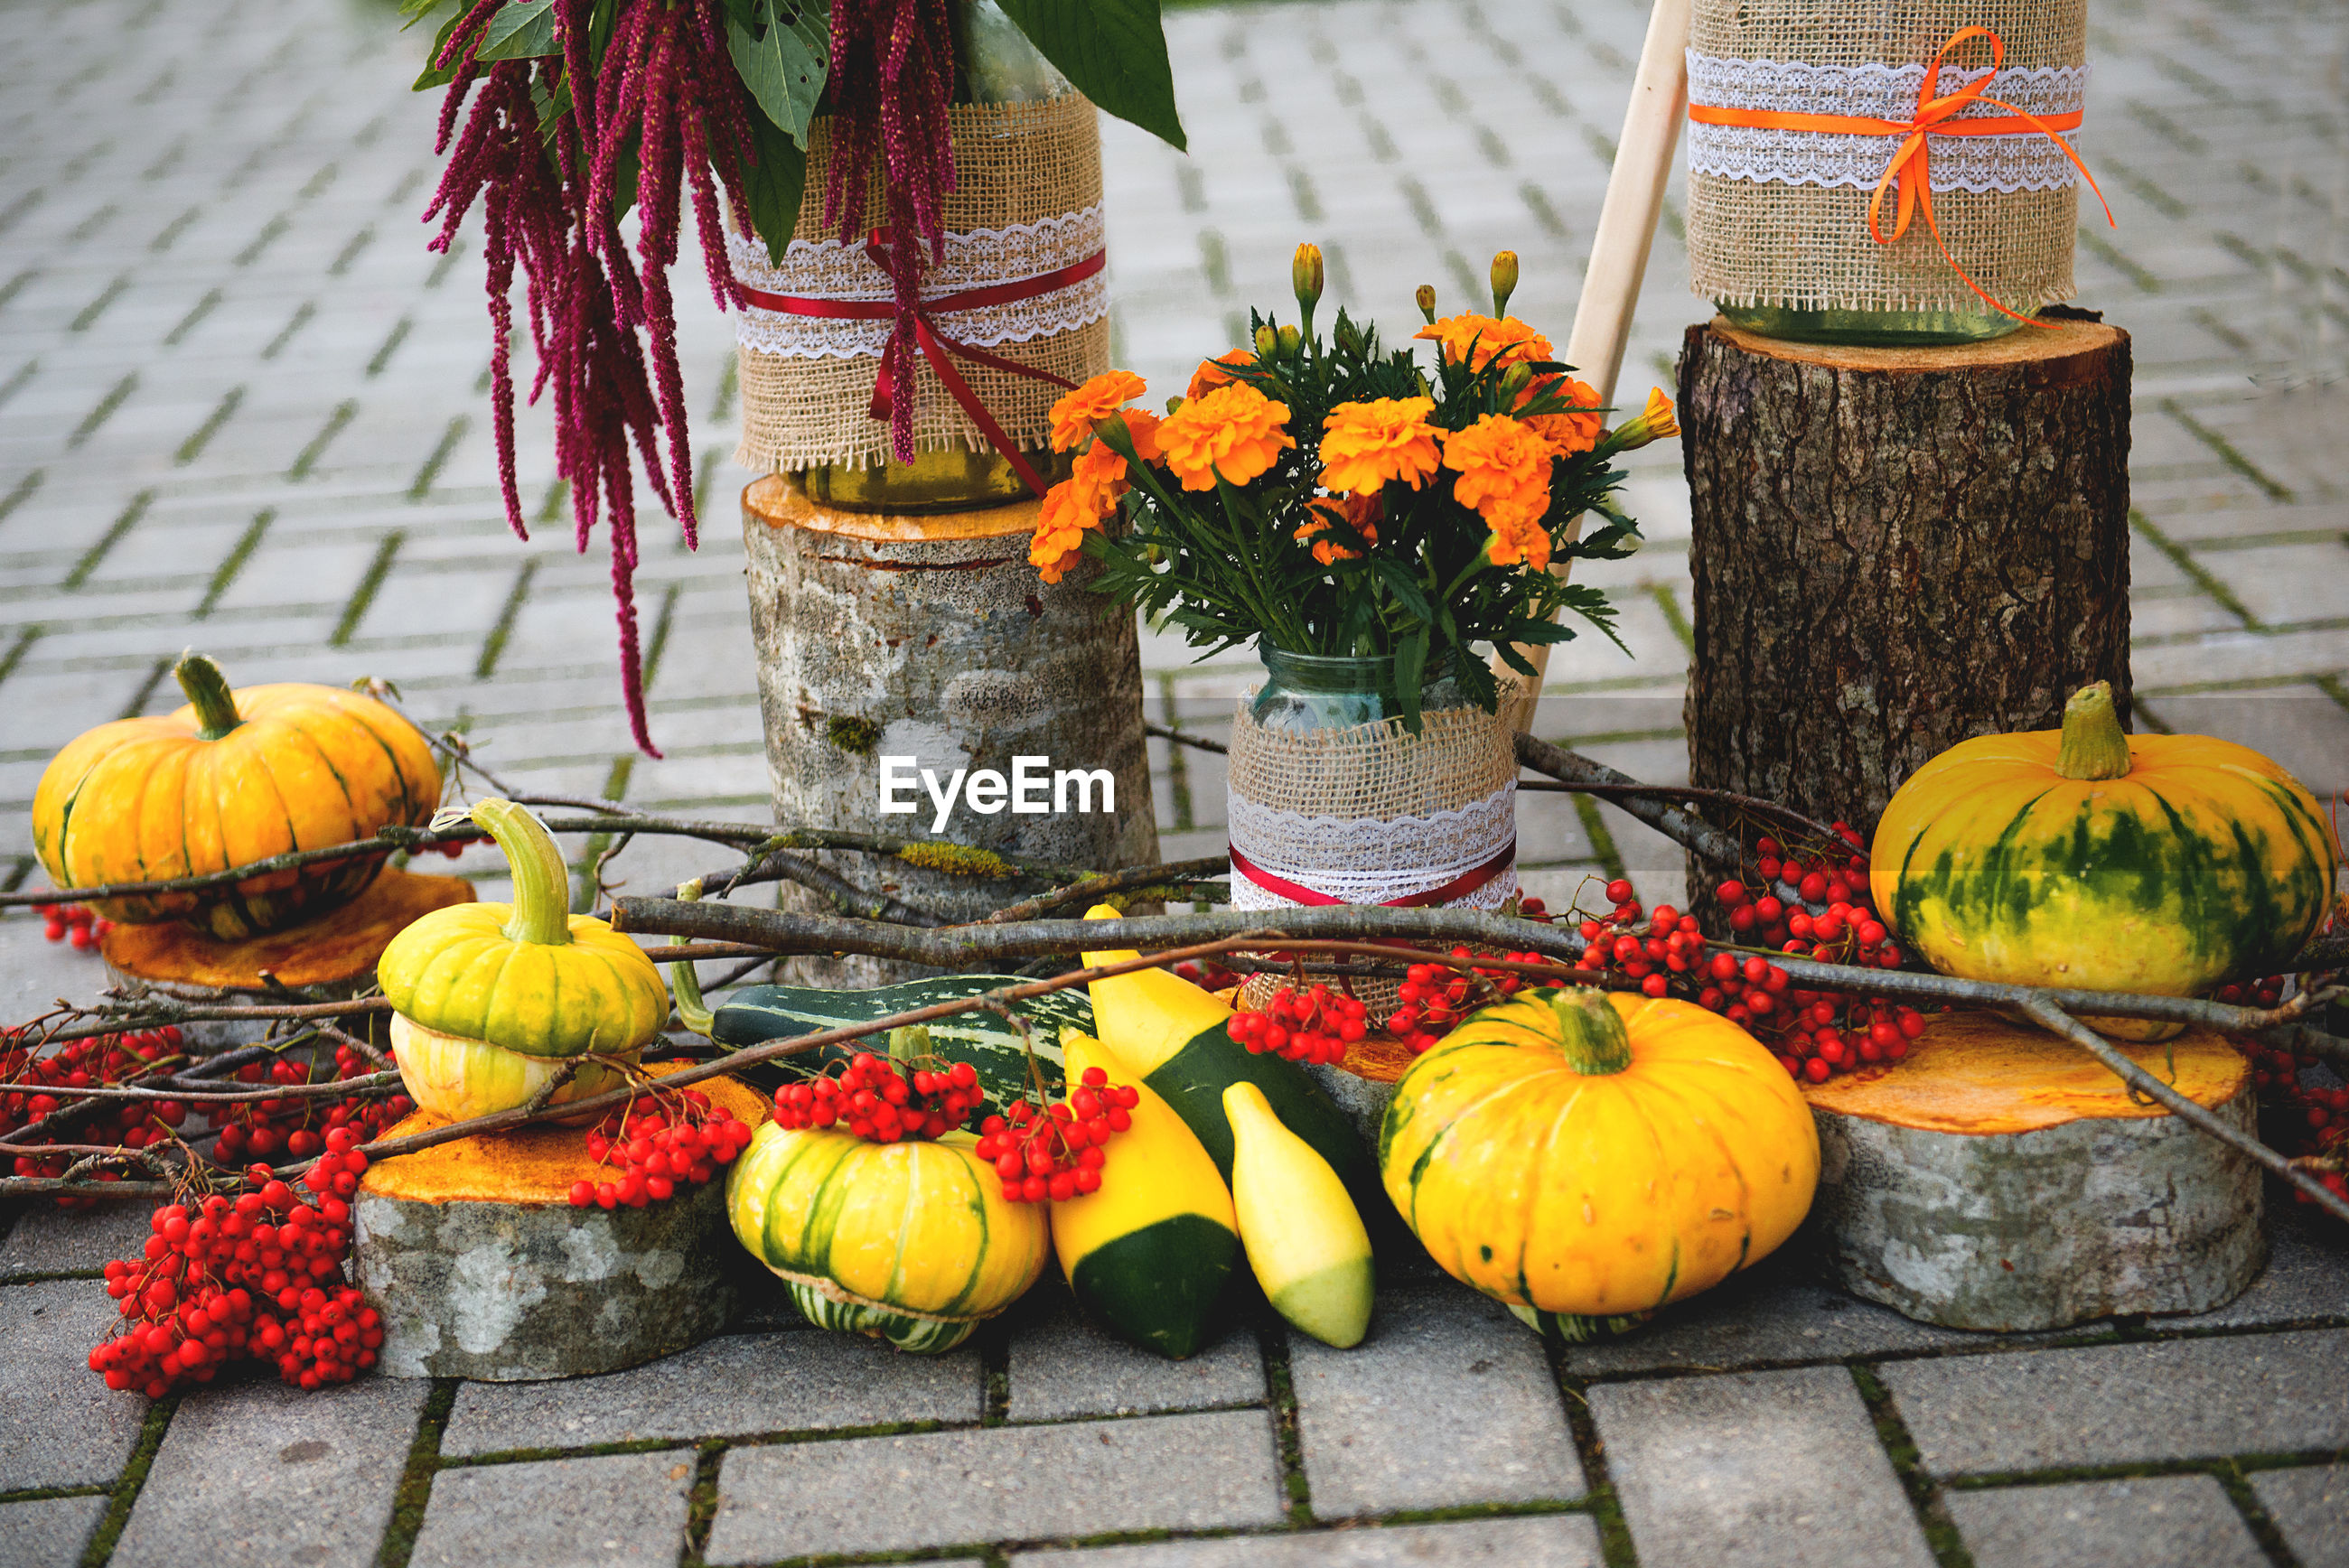 High angle view of pumpkins and flowers on street